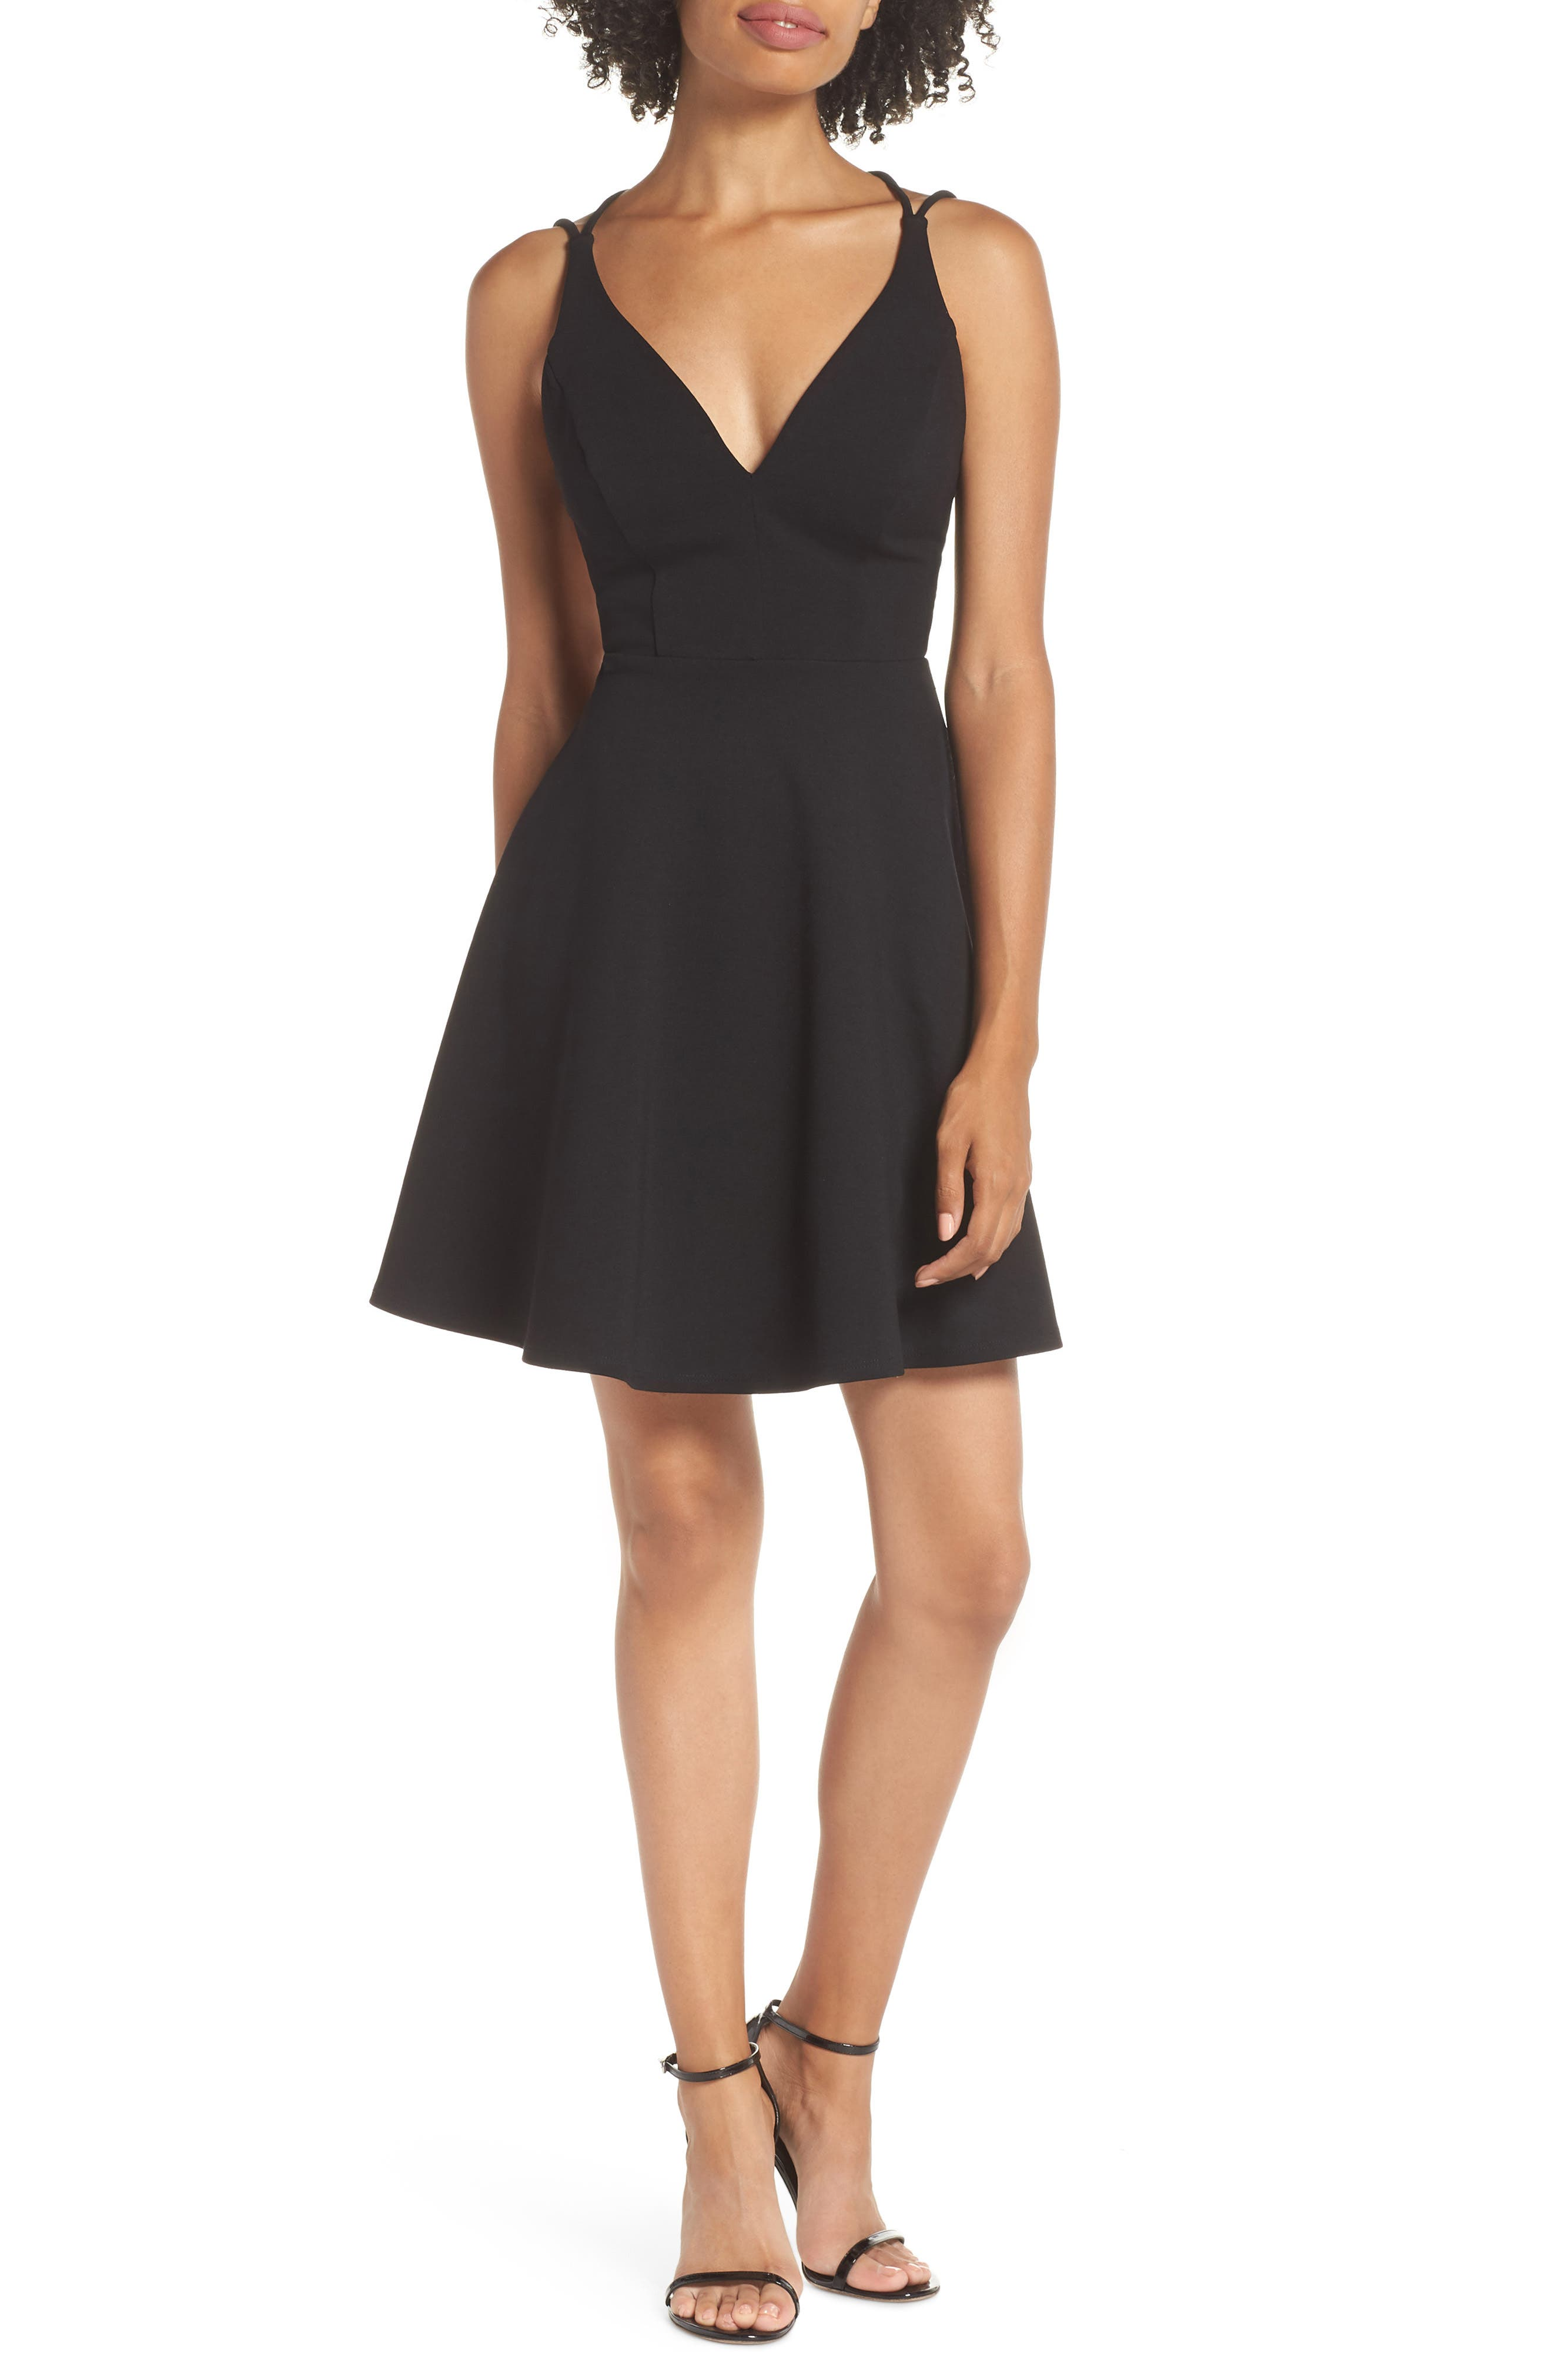 LULUS Believe in Love Strappy Back Skater Dress, Main, color, BLACK